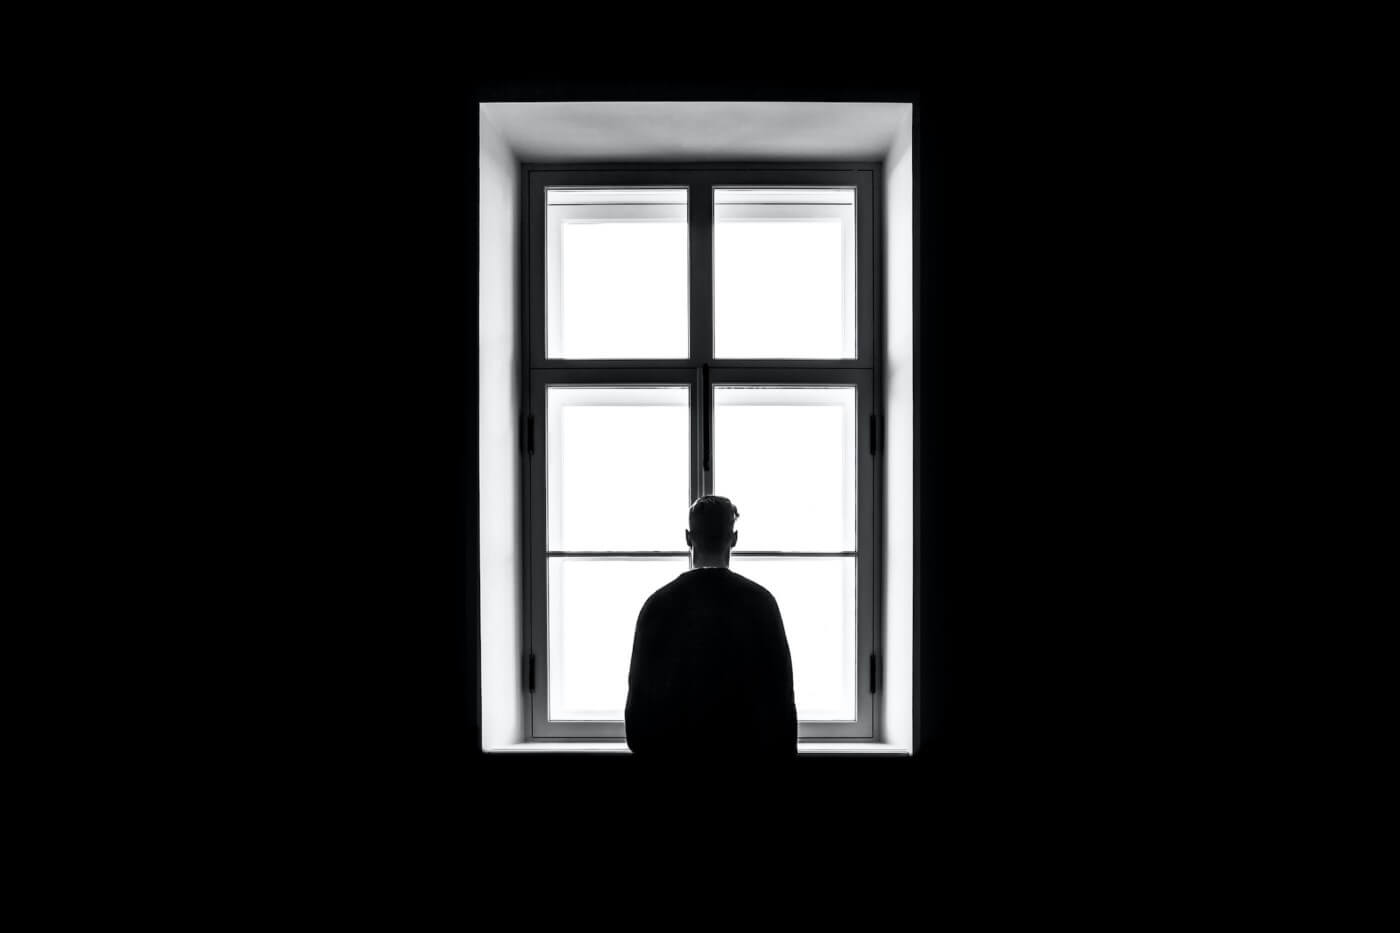 lonely man by the window